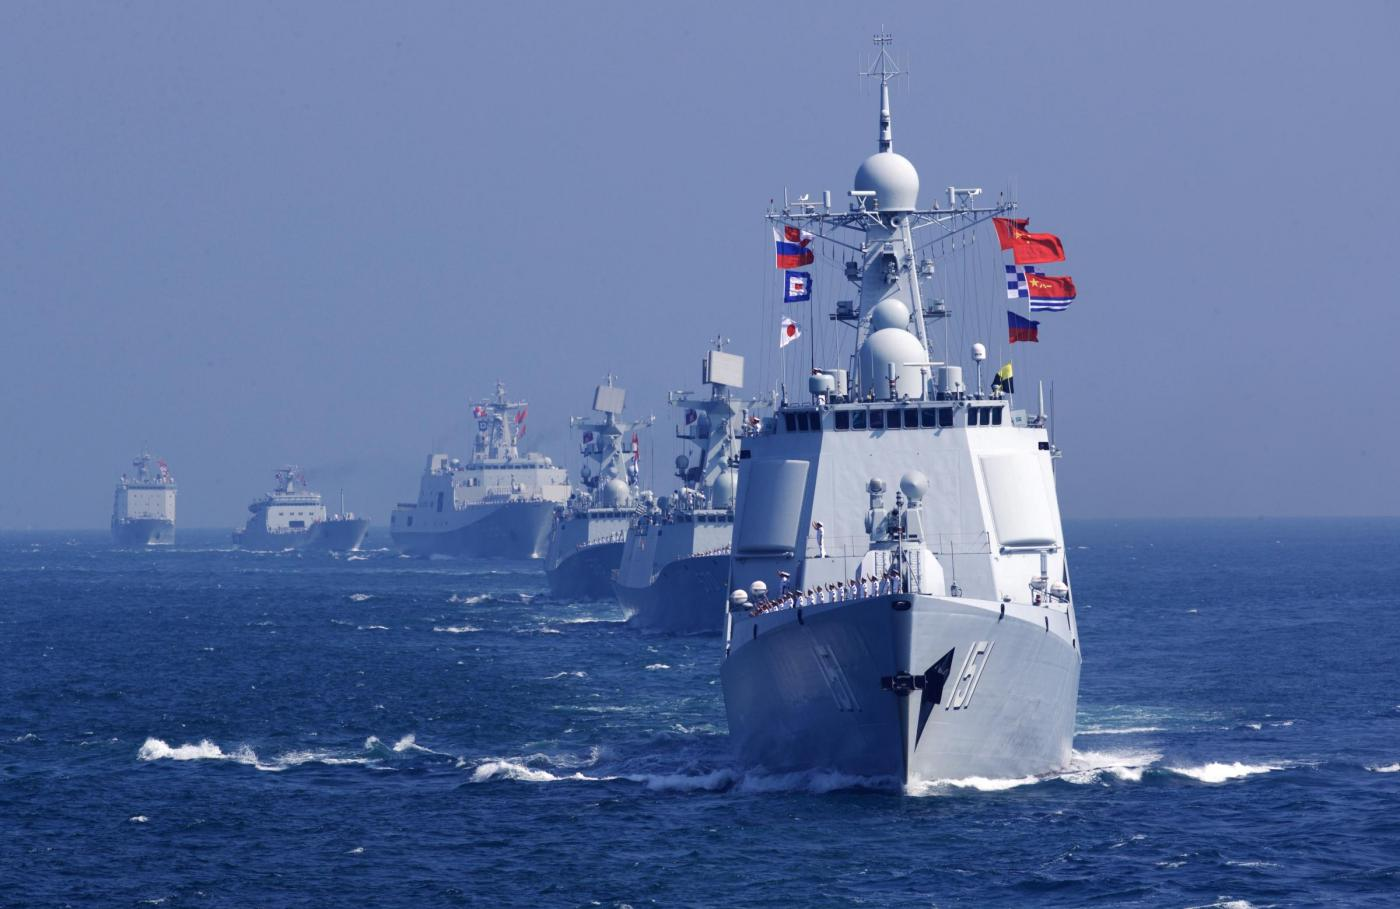 "(160919) -- ABOARD WARSHIP GUANGZHOU, Sept. 19, 2016 (Xinhua) -- Chinese officers and soldiers waves to say goodbye to Russian fleet during a China-Russia naval joint drill at sea off south China's Guangdong Province, Sept. 19, 2016. The closing ceremony of the ""Joint Sea 2016"" drill was held at the joint director department after Chinese and Russian fleets completed all scheduled subjects of the drill on a sea area east of Zhanjiang in south China's Guangdong Province on Monday.  (Xinhua/Zha Chunming) (yxb)"